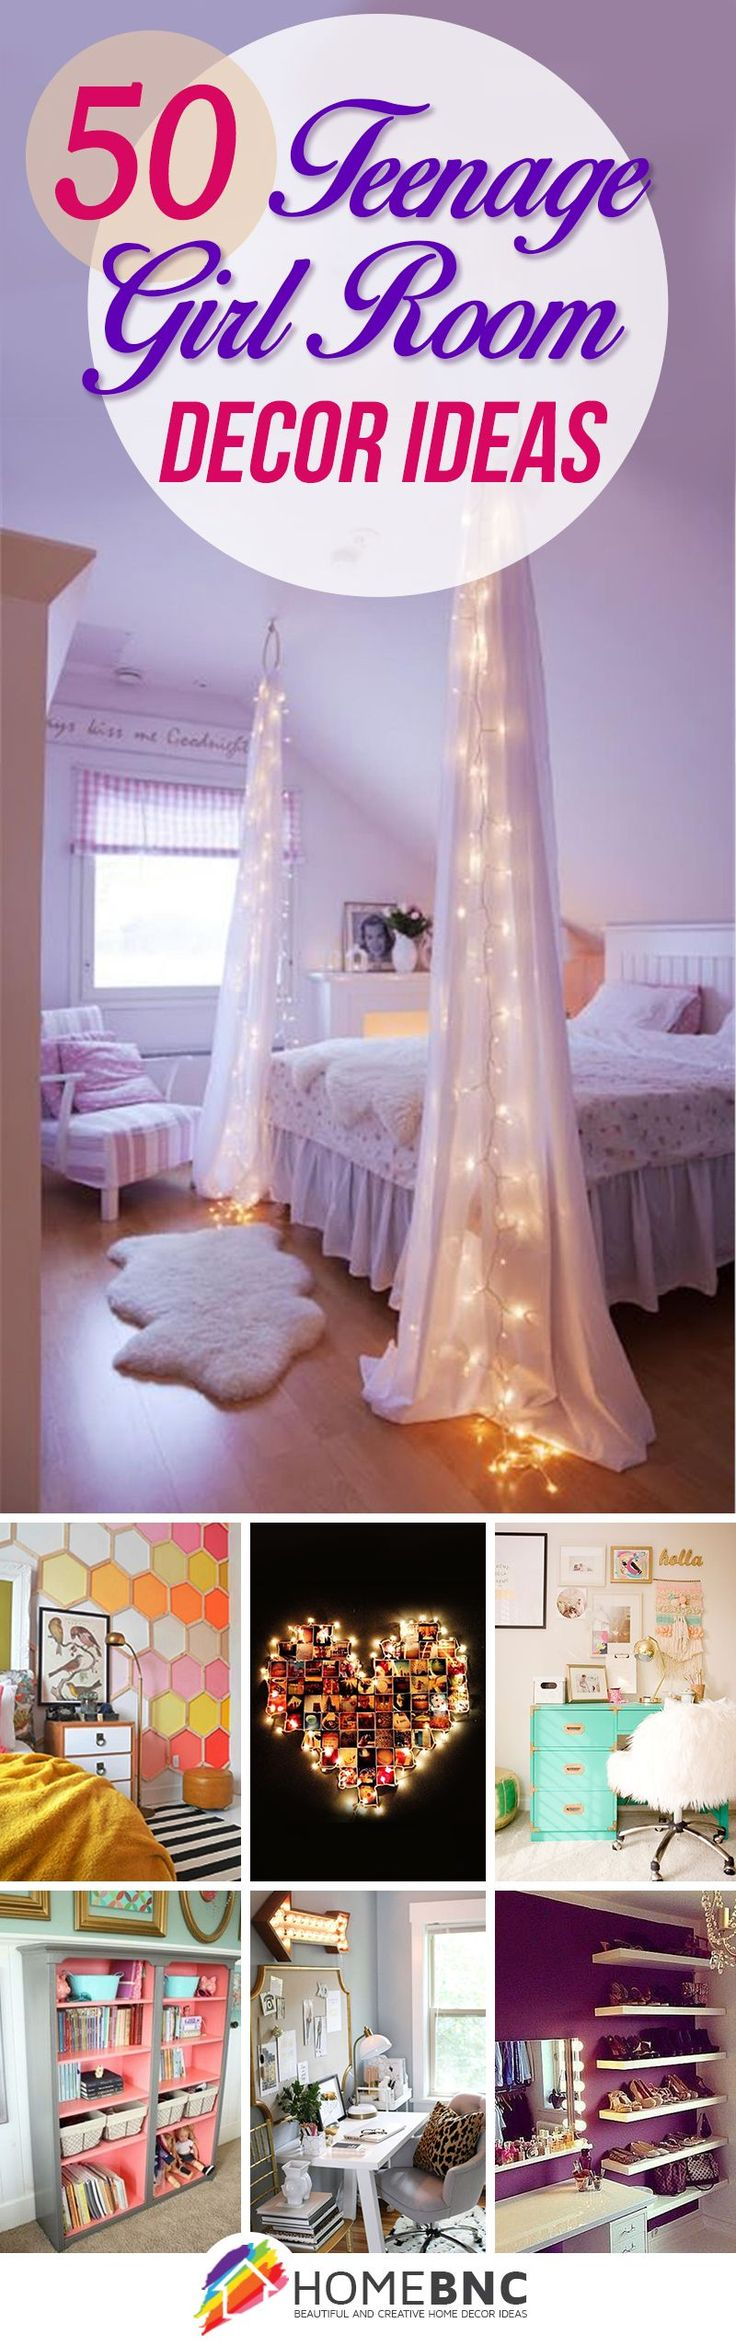 Bedroom Design Ideas For Girls best 25+ girl rooms ideas on pinterest | girl room, girl bedroom